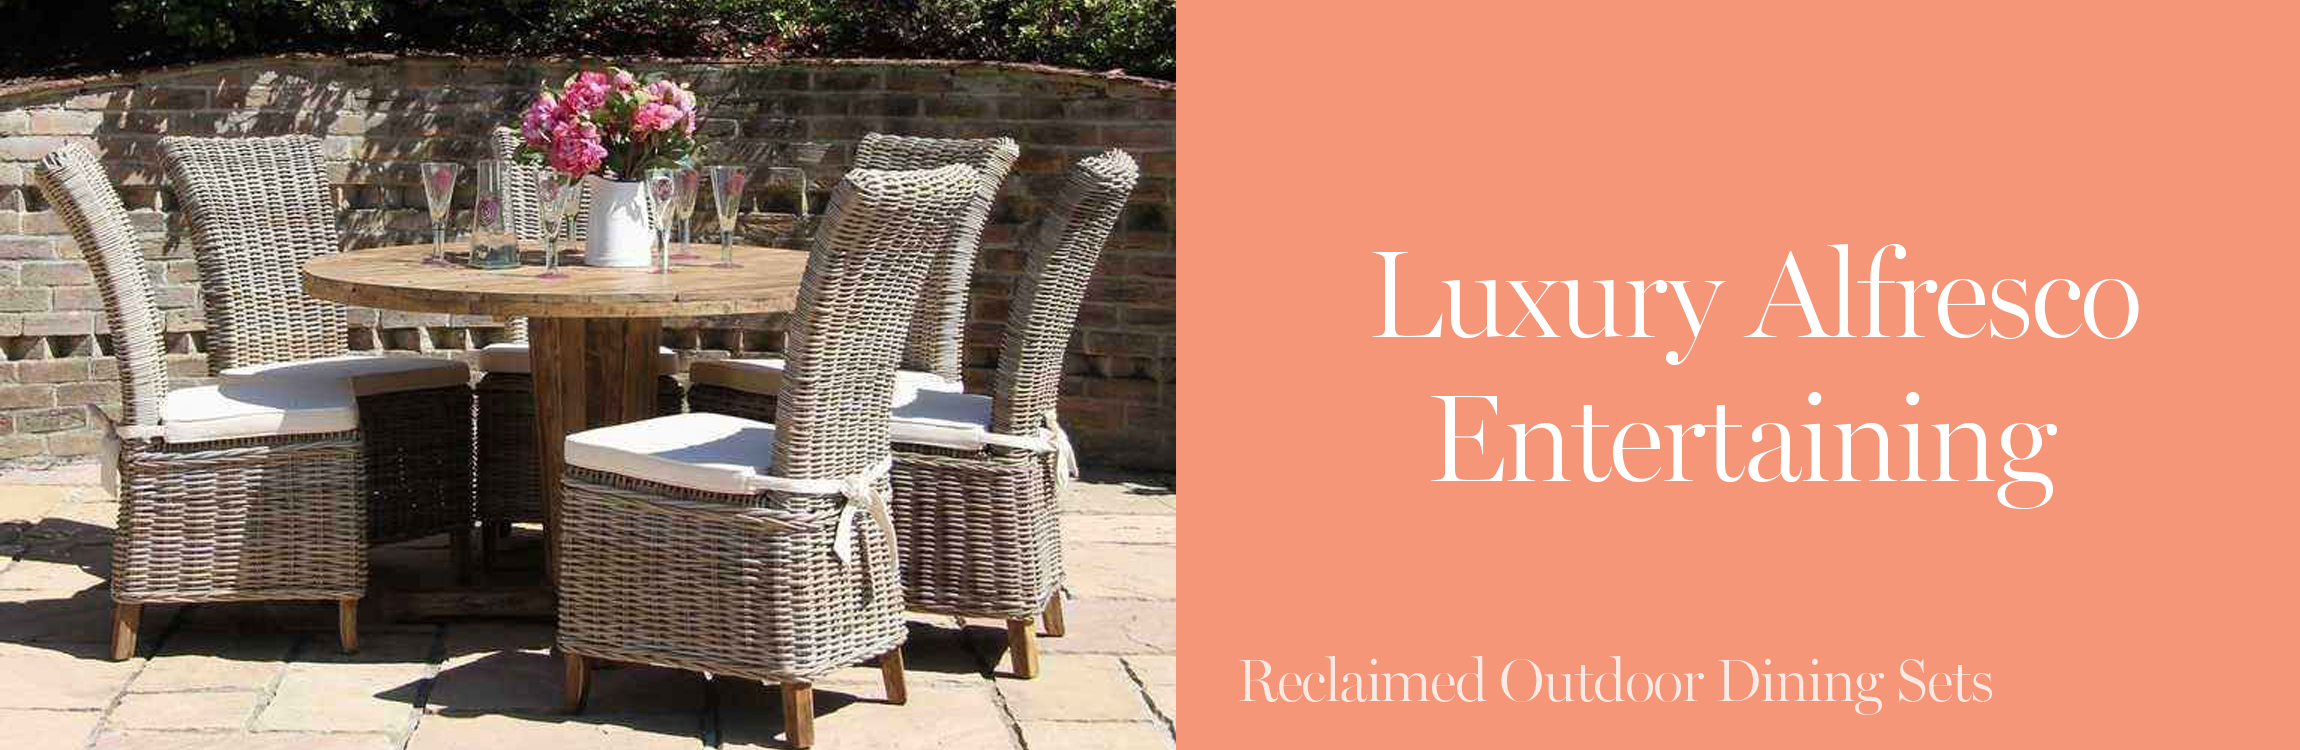 Luxury Reclaimed Outdoor Dining Sets